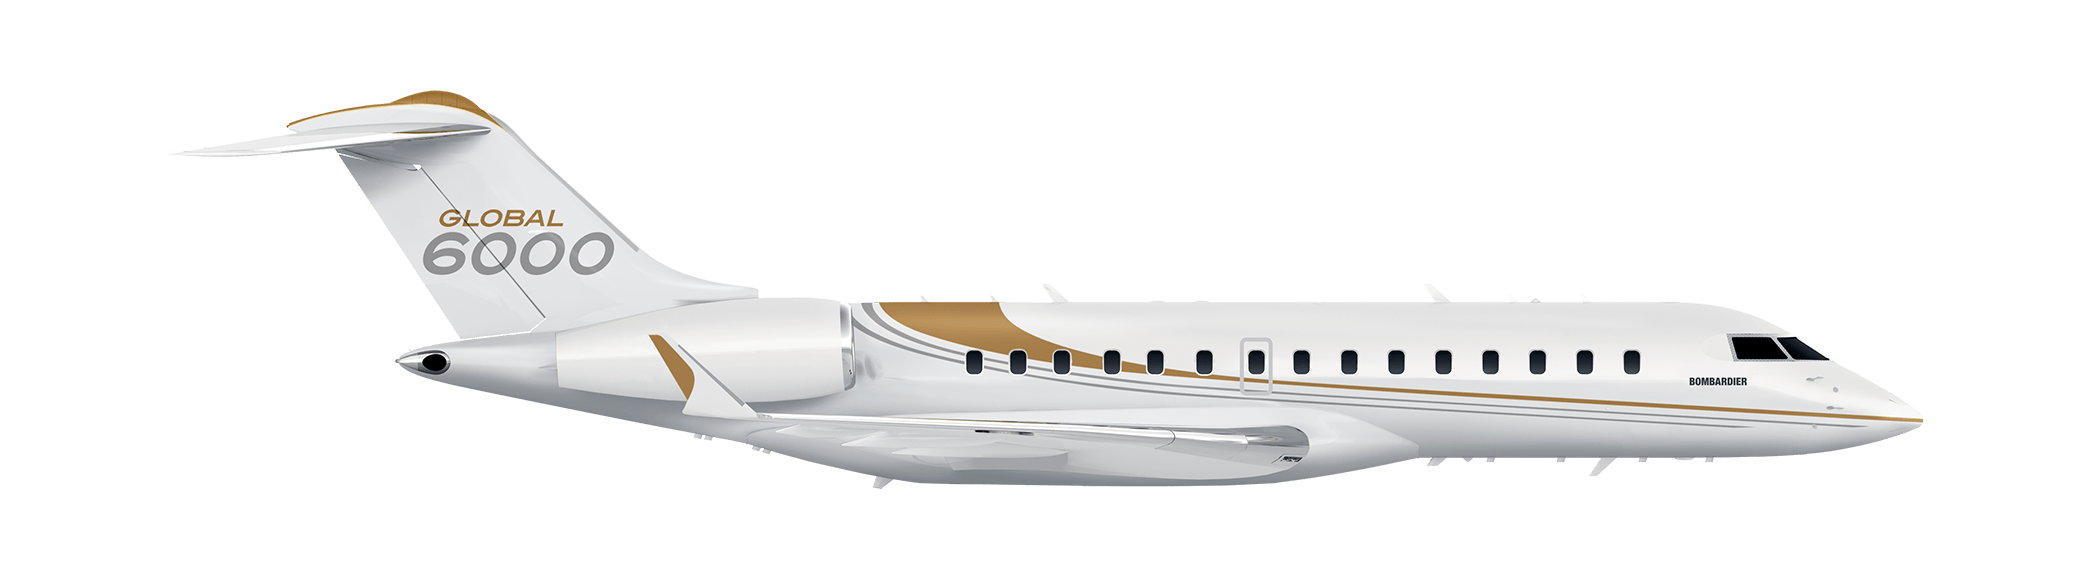 global6000 side image